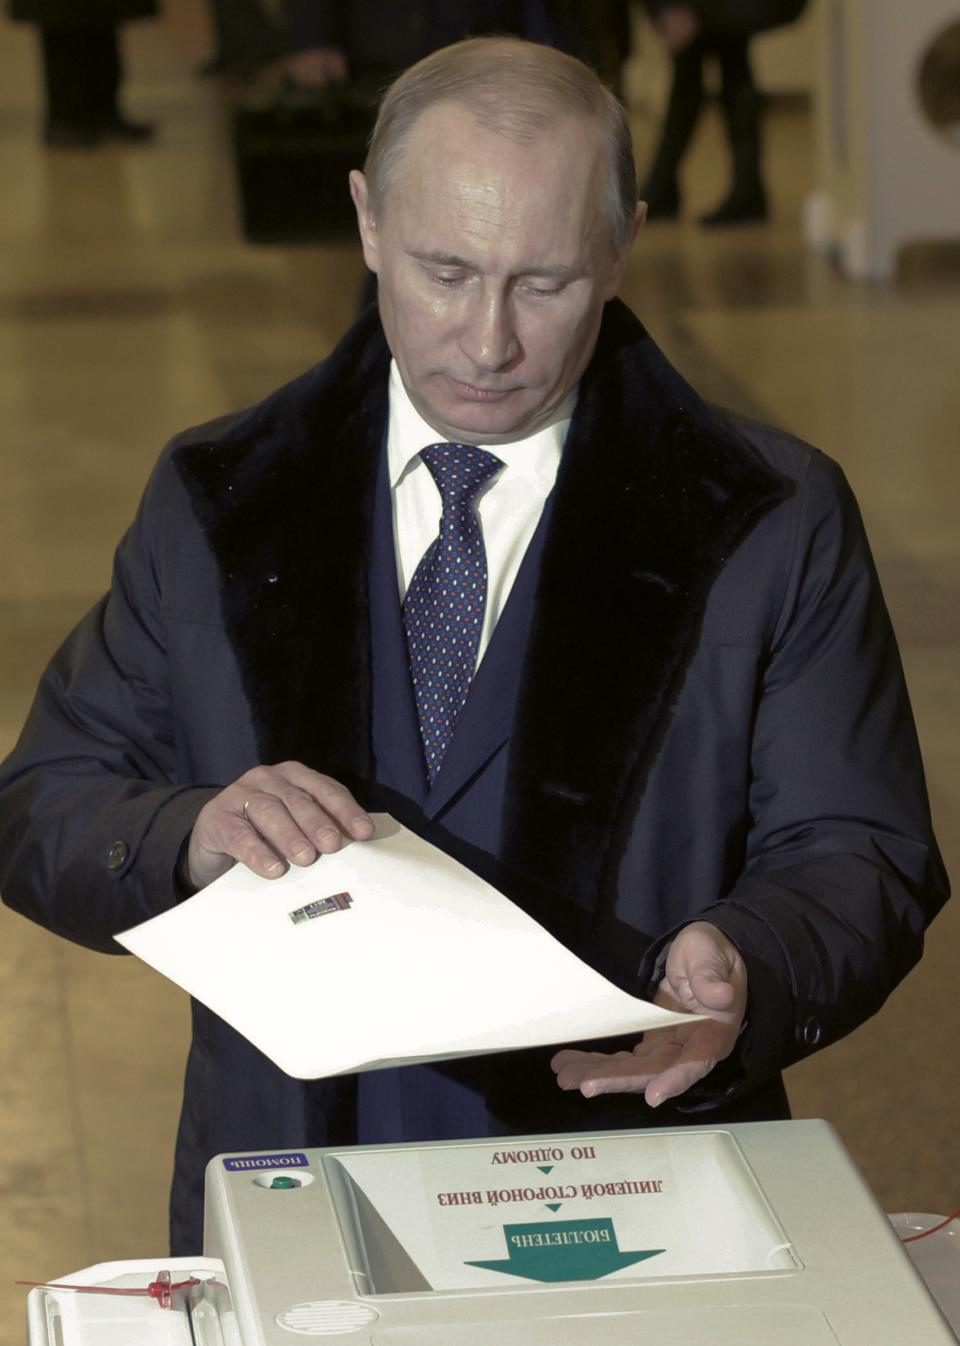 Russian Prime Minister Vladimir Putin casts his ballot at a polling station in Moscow,  Russia, Sunday, Dec. 4, 2011. Russians cast their ballots with muted enthusiasm in national parliament elections on Sunday, a vote that opinion polls indicate could water down the strength of the country's dominant party. (AP Photo/Ivan Sekretarev)